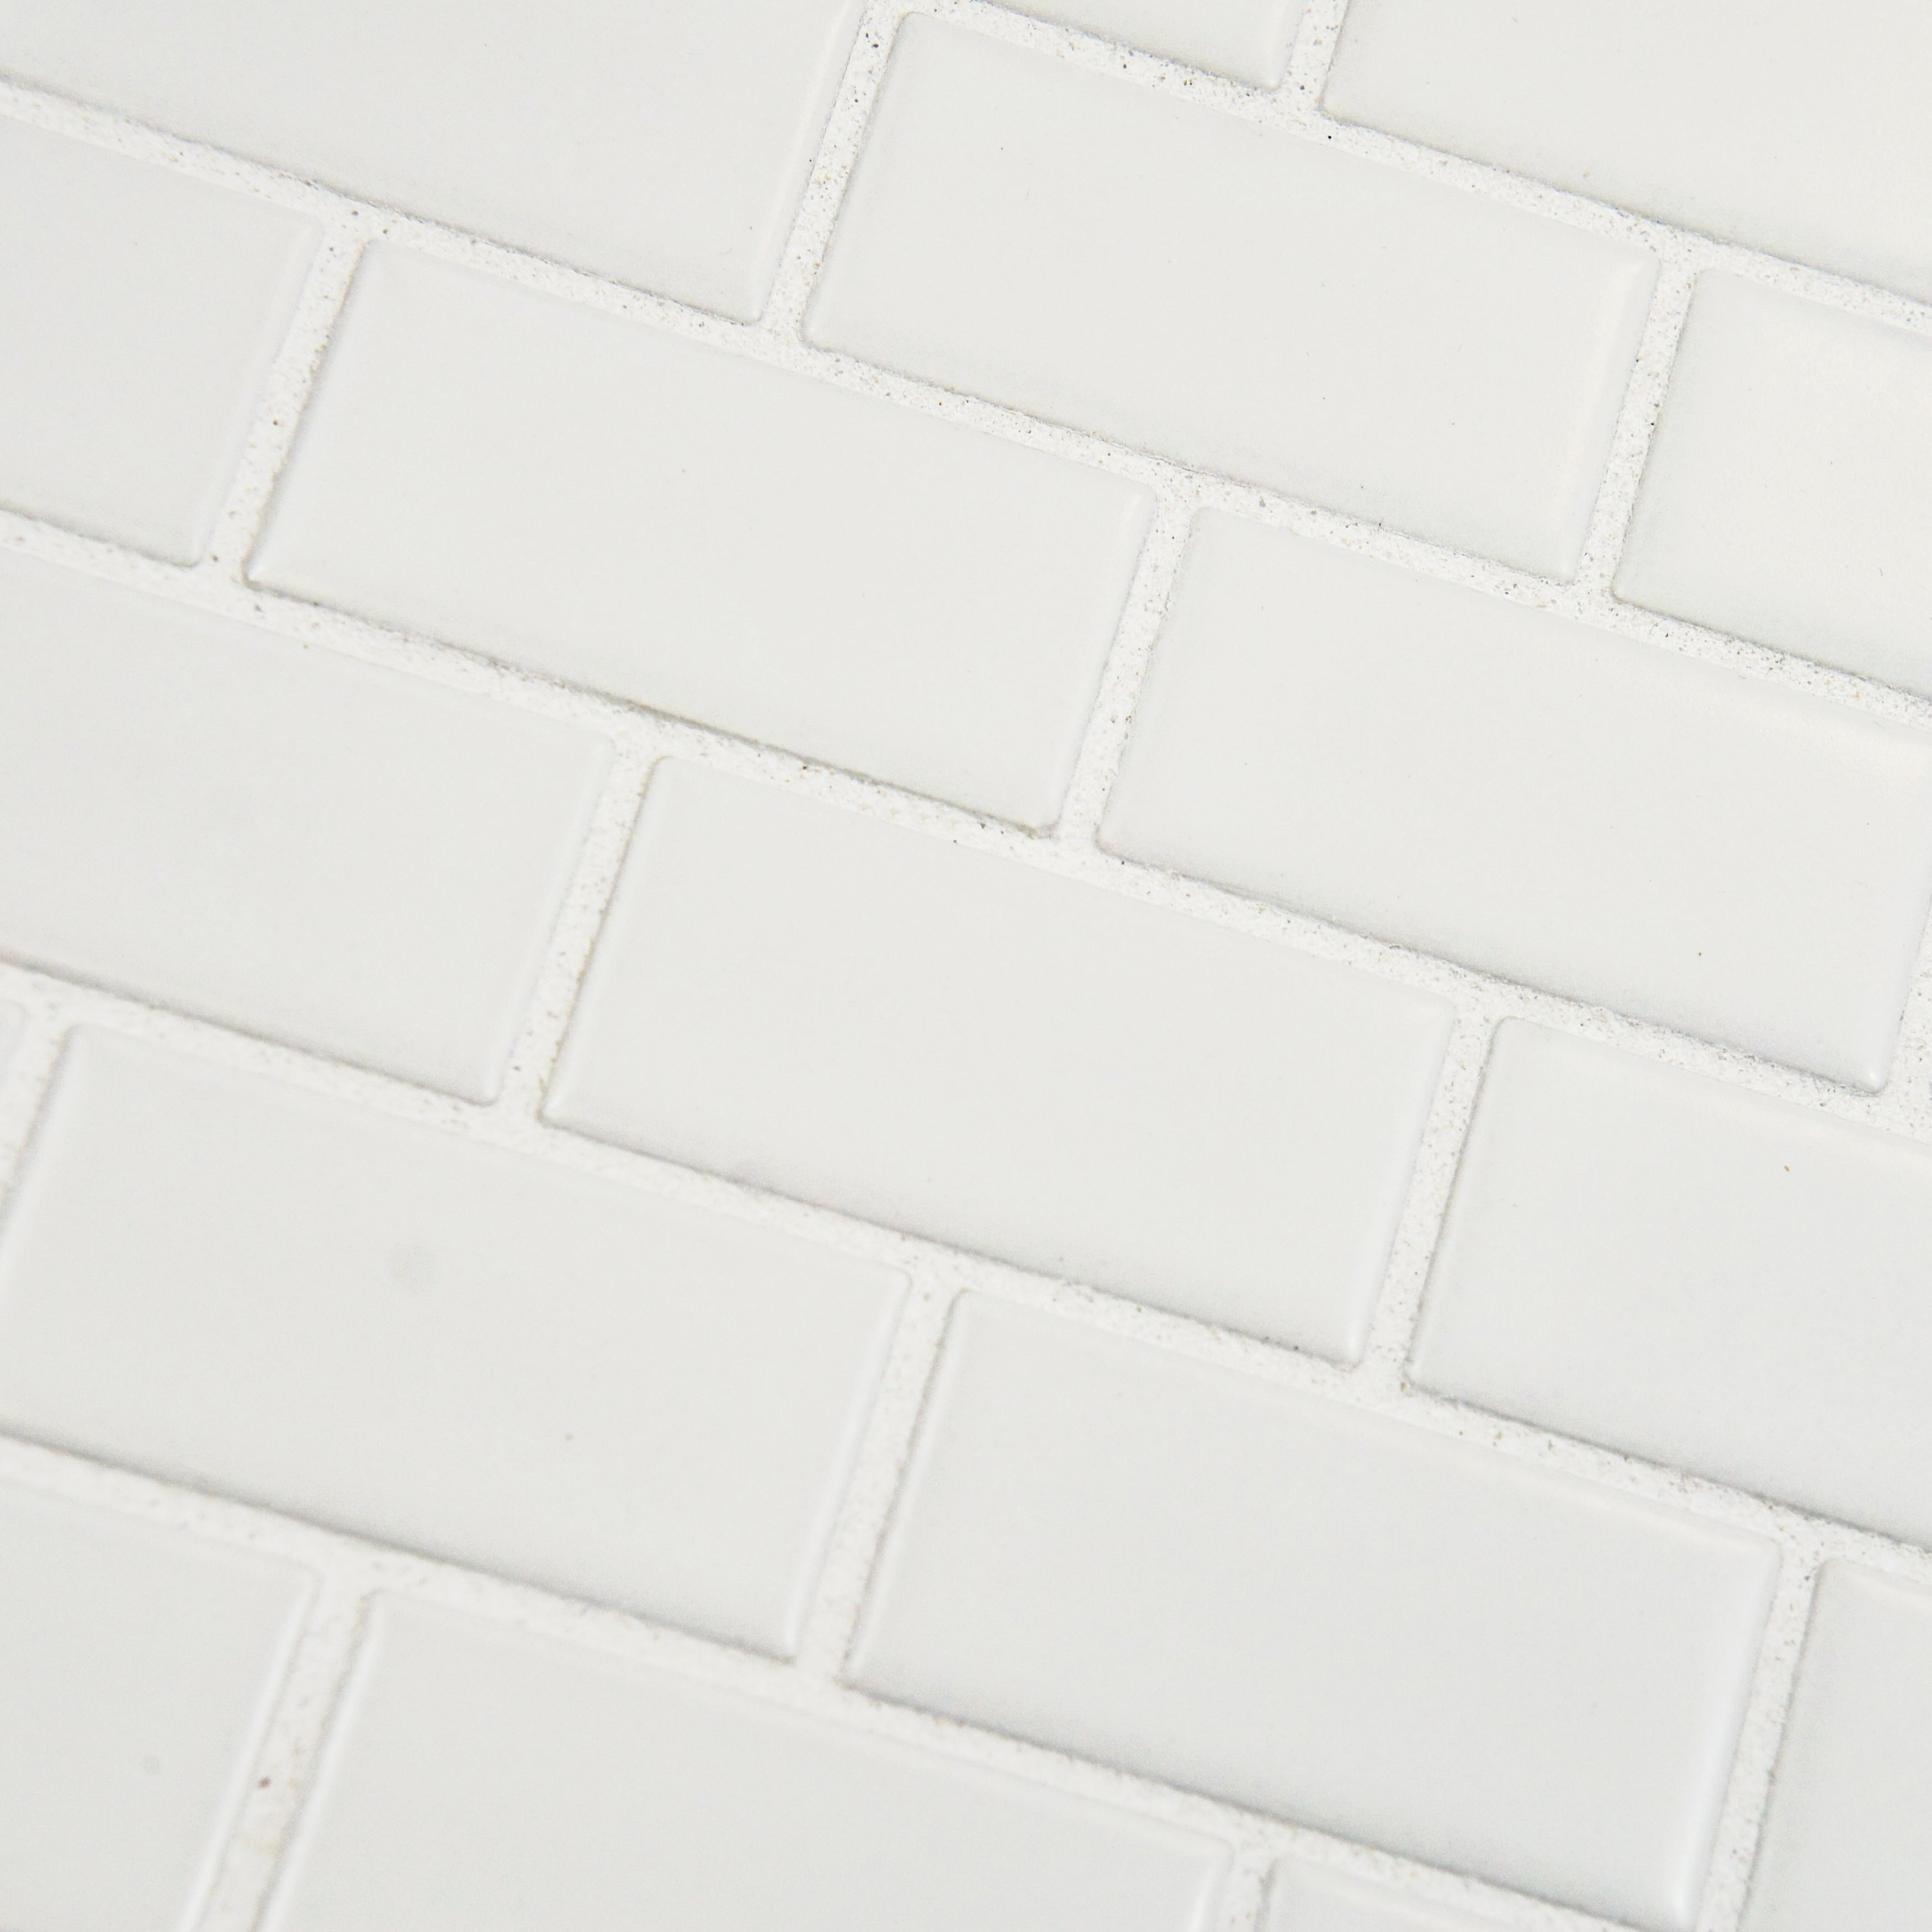 Somertile 11 75x11 75 Inch Victorian Subway Matte White Porcelain Mosaic Floor And Wall Tile 10 Tiles 9 6 Sqft Free Shipping Today